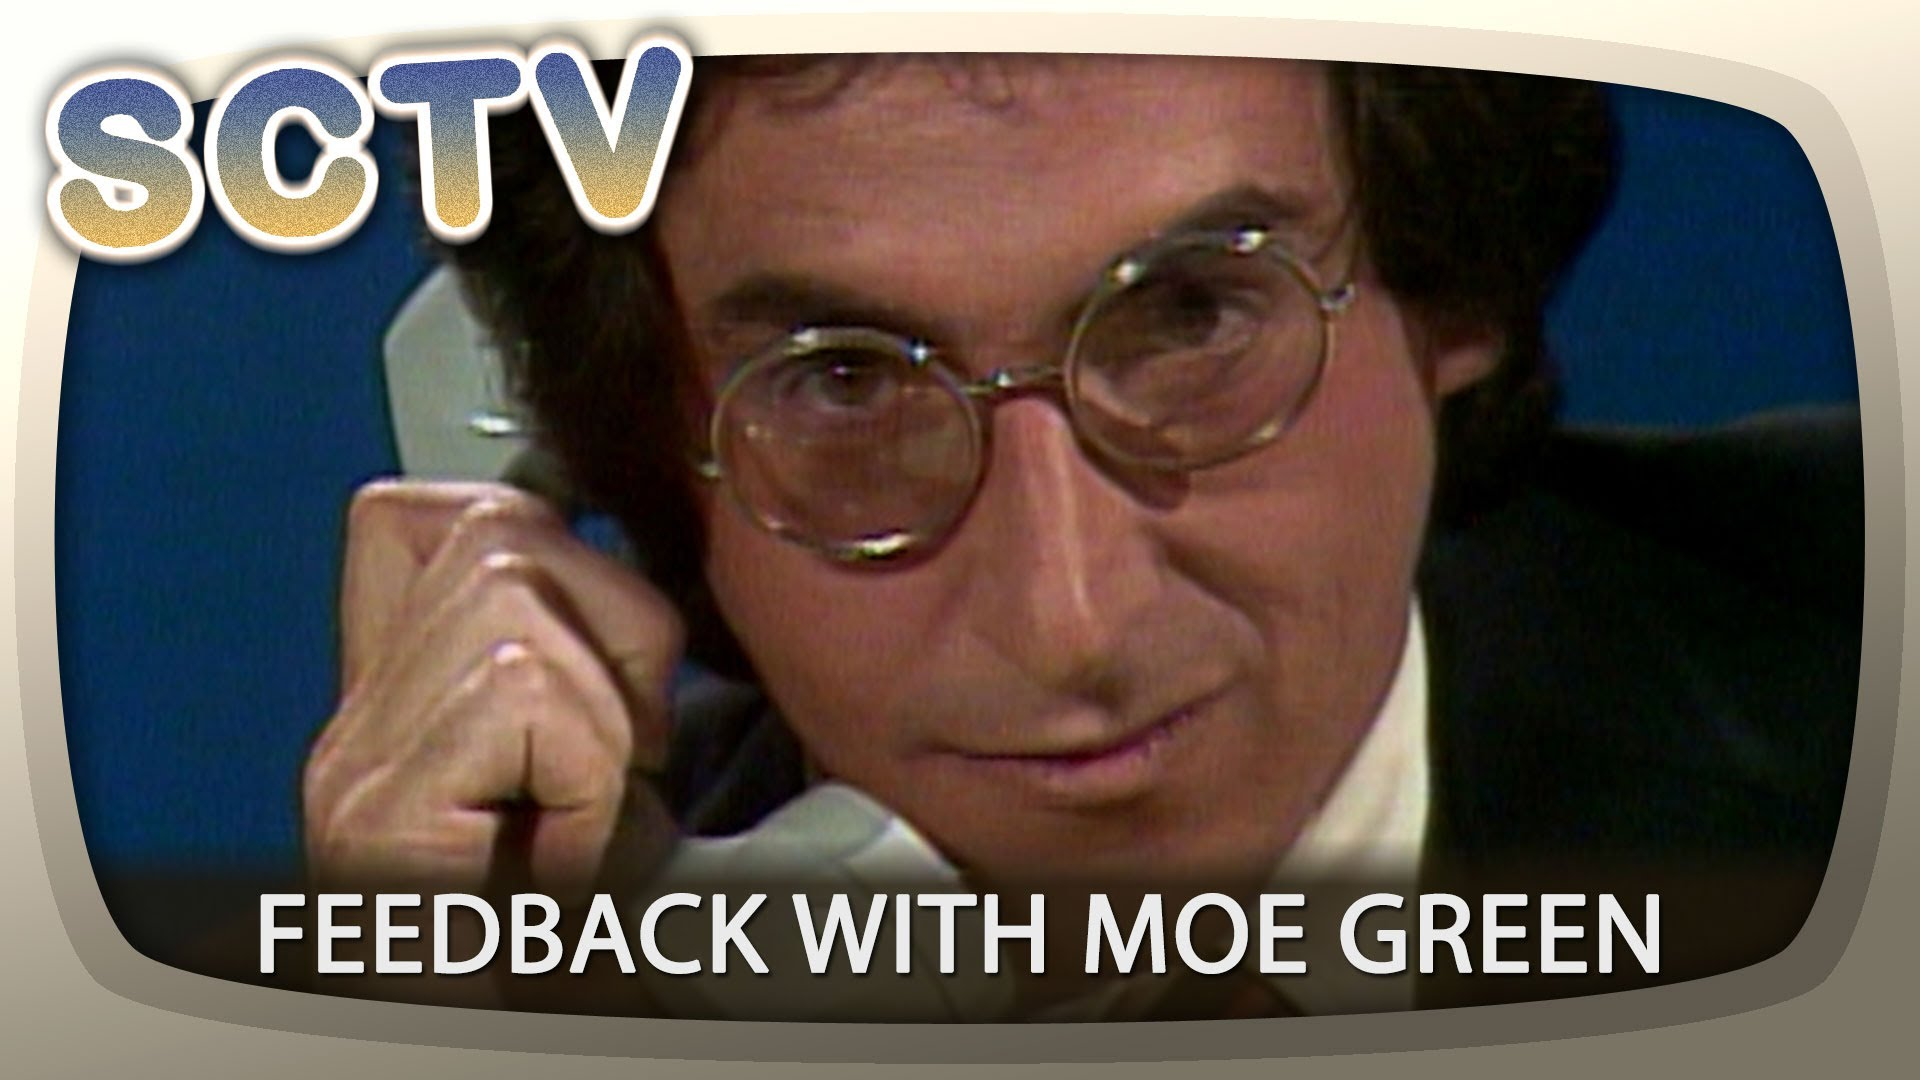 SCTV: Feedback with Moe Green featuring Harold Ramis